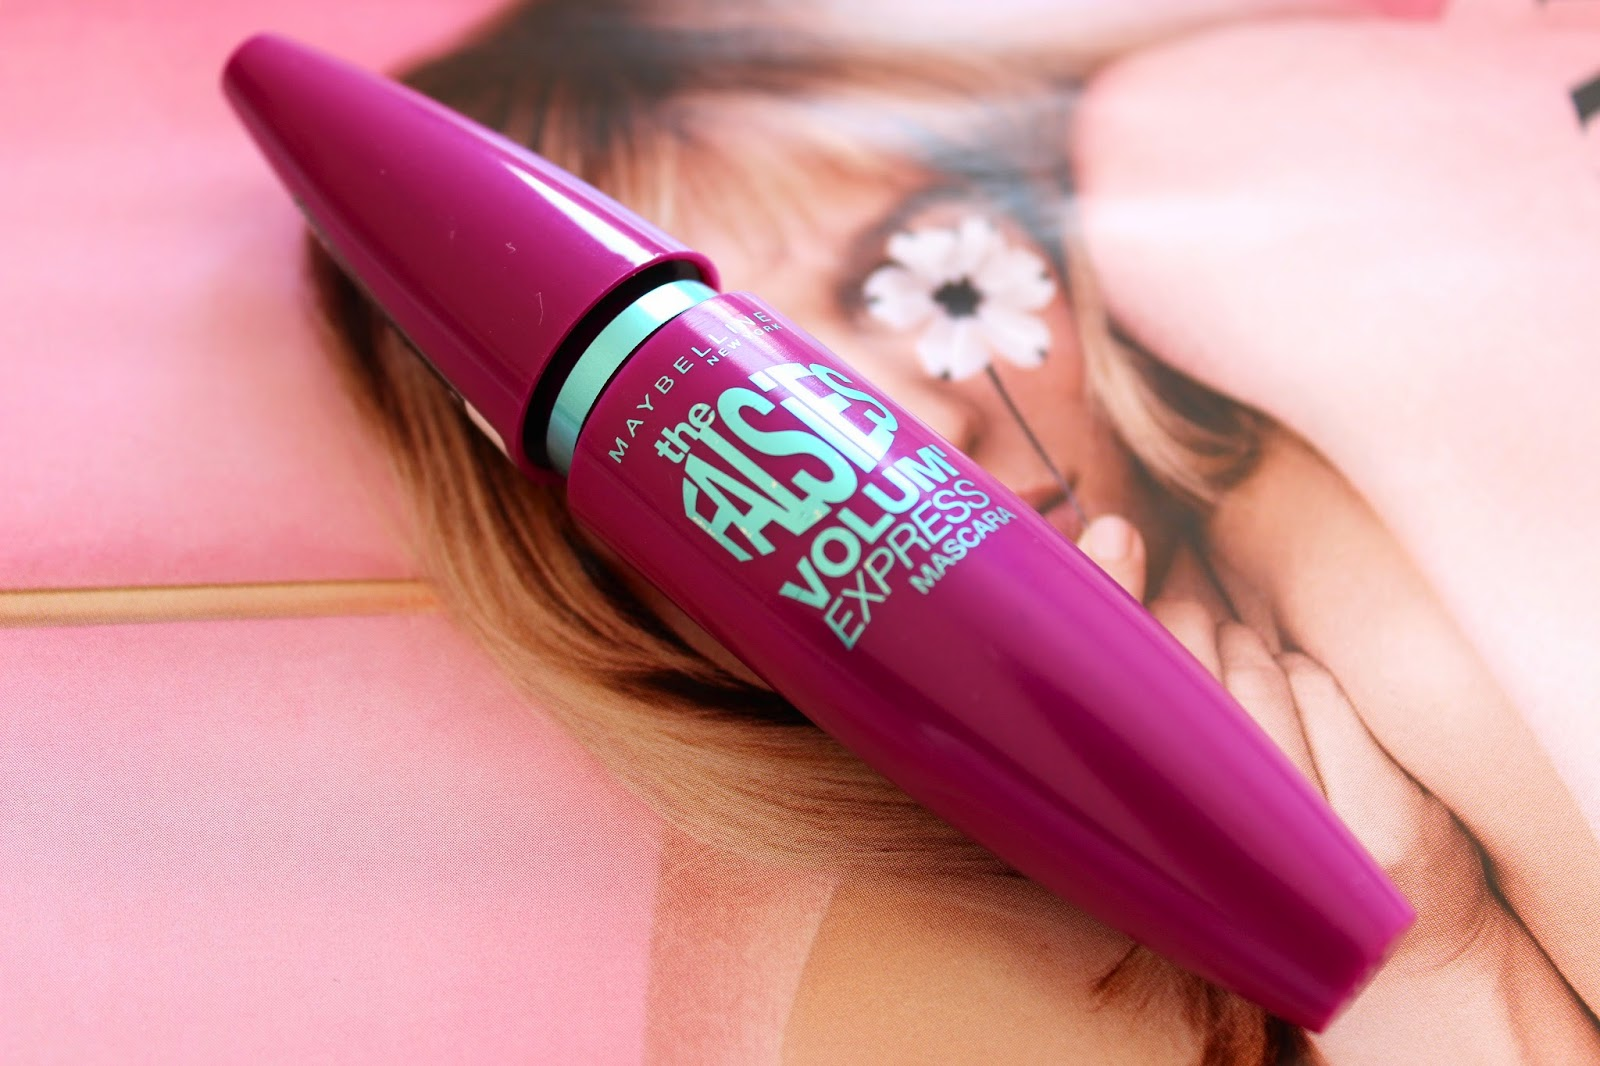 Maybelline The Falsies Mascara review blog girl culture rosy cherrington volum express